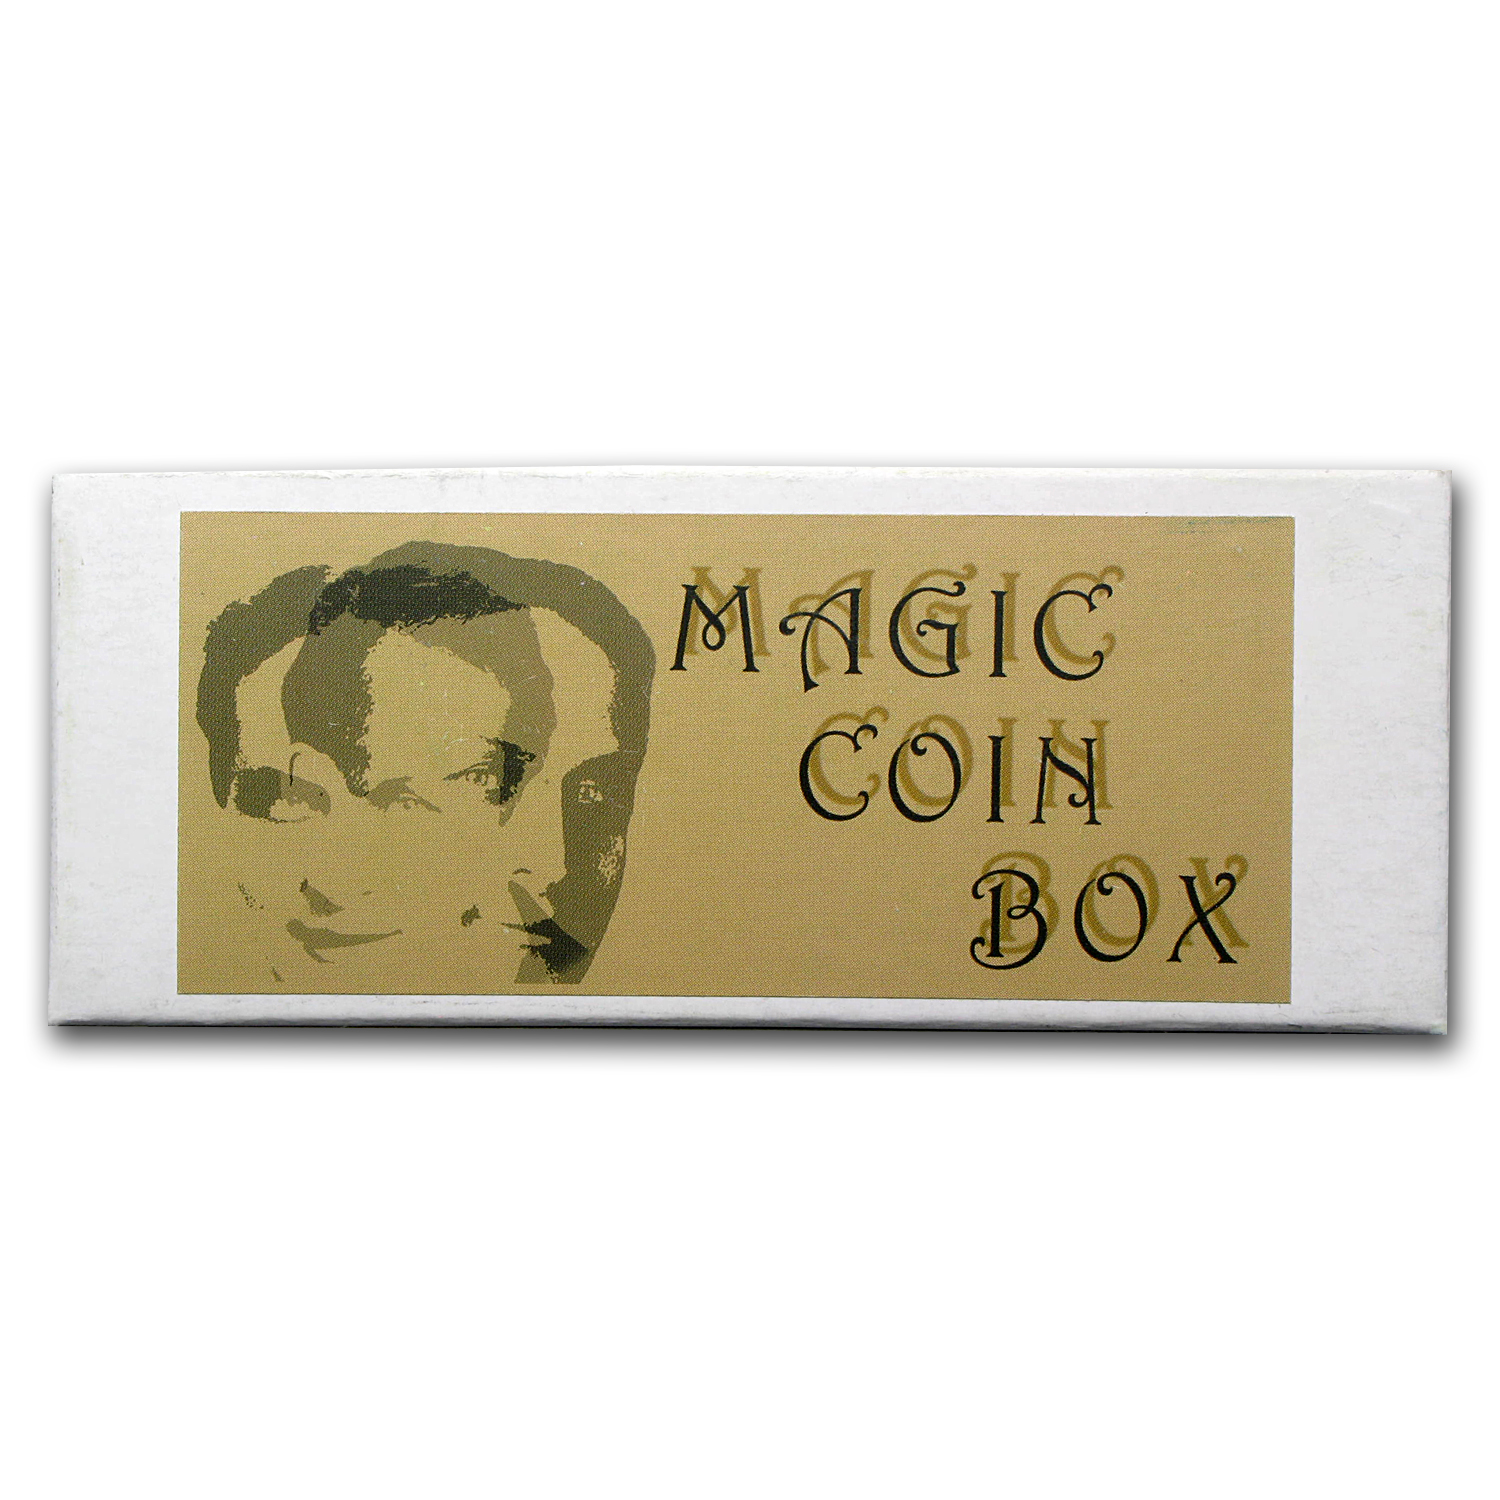 Palau 2011 Silver $2 Harry Houdini Coin with a Magic Coin Box